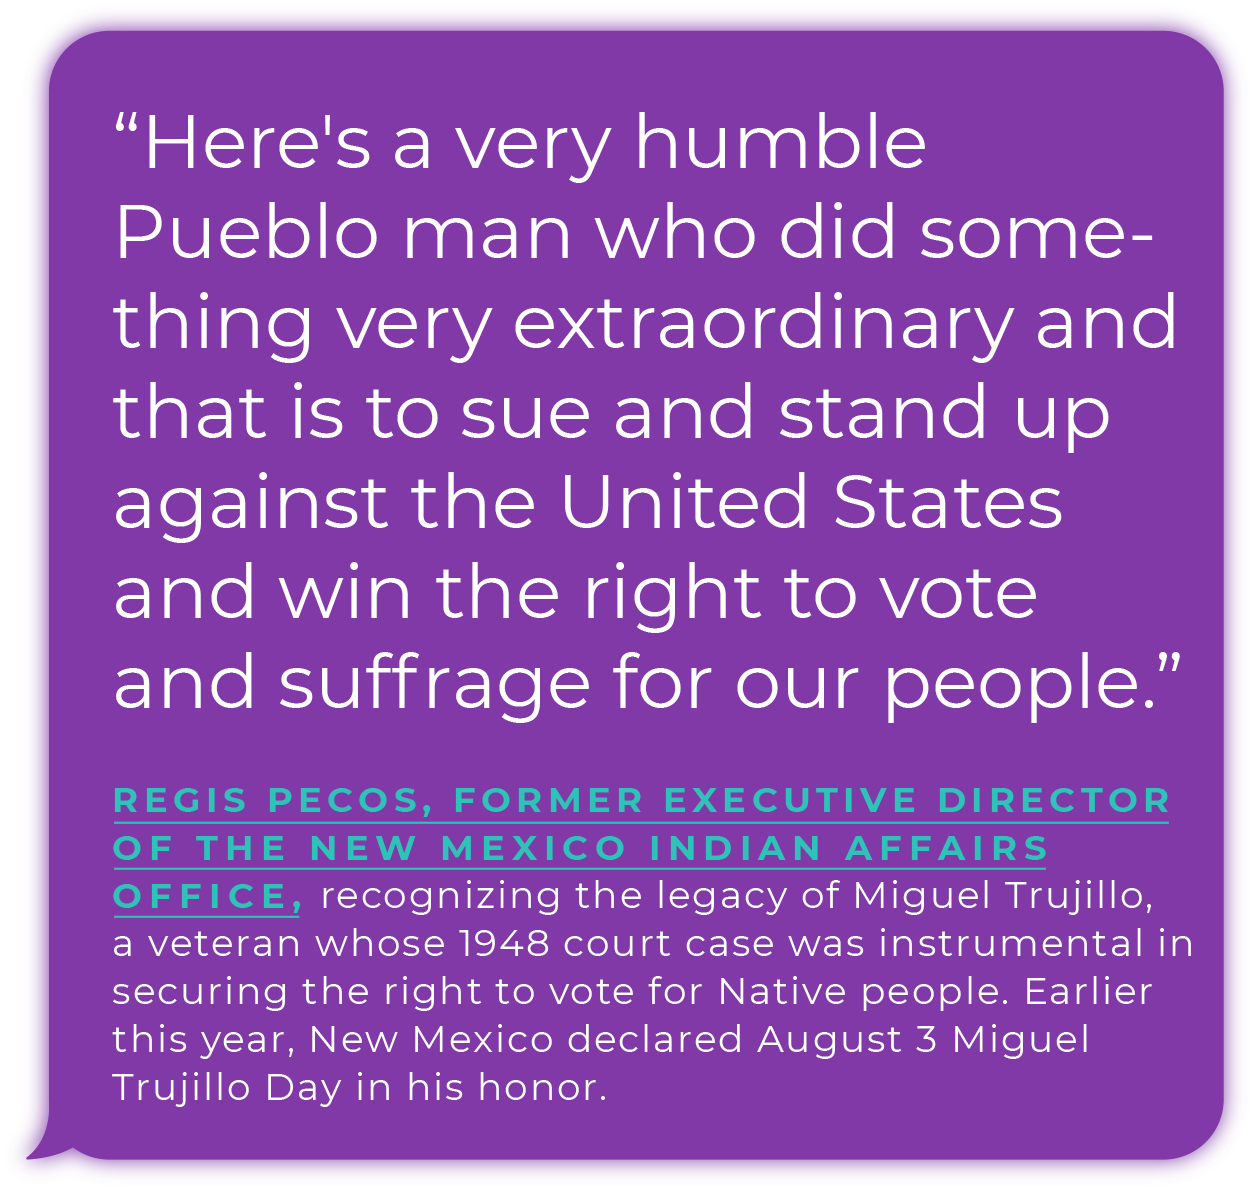 """""""Here's a very humble Pueblo man who did something very extraordinary and that is to sue and stand up against the United States and win the right to vote and suffrage for our people."""" - Regis Pecos, former executive director of the New Mexico Indian Affairs Office, recognizing the legacy of Miguel  Trujillo, a veteran whose 1948 court case was instrumental in securing the right to vote for Native people. Earlier this year, New Mexico declared August 3 Miguel Trujillo Day in his honor."""